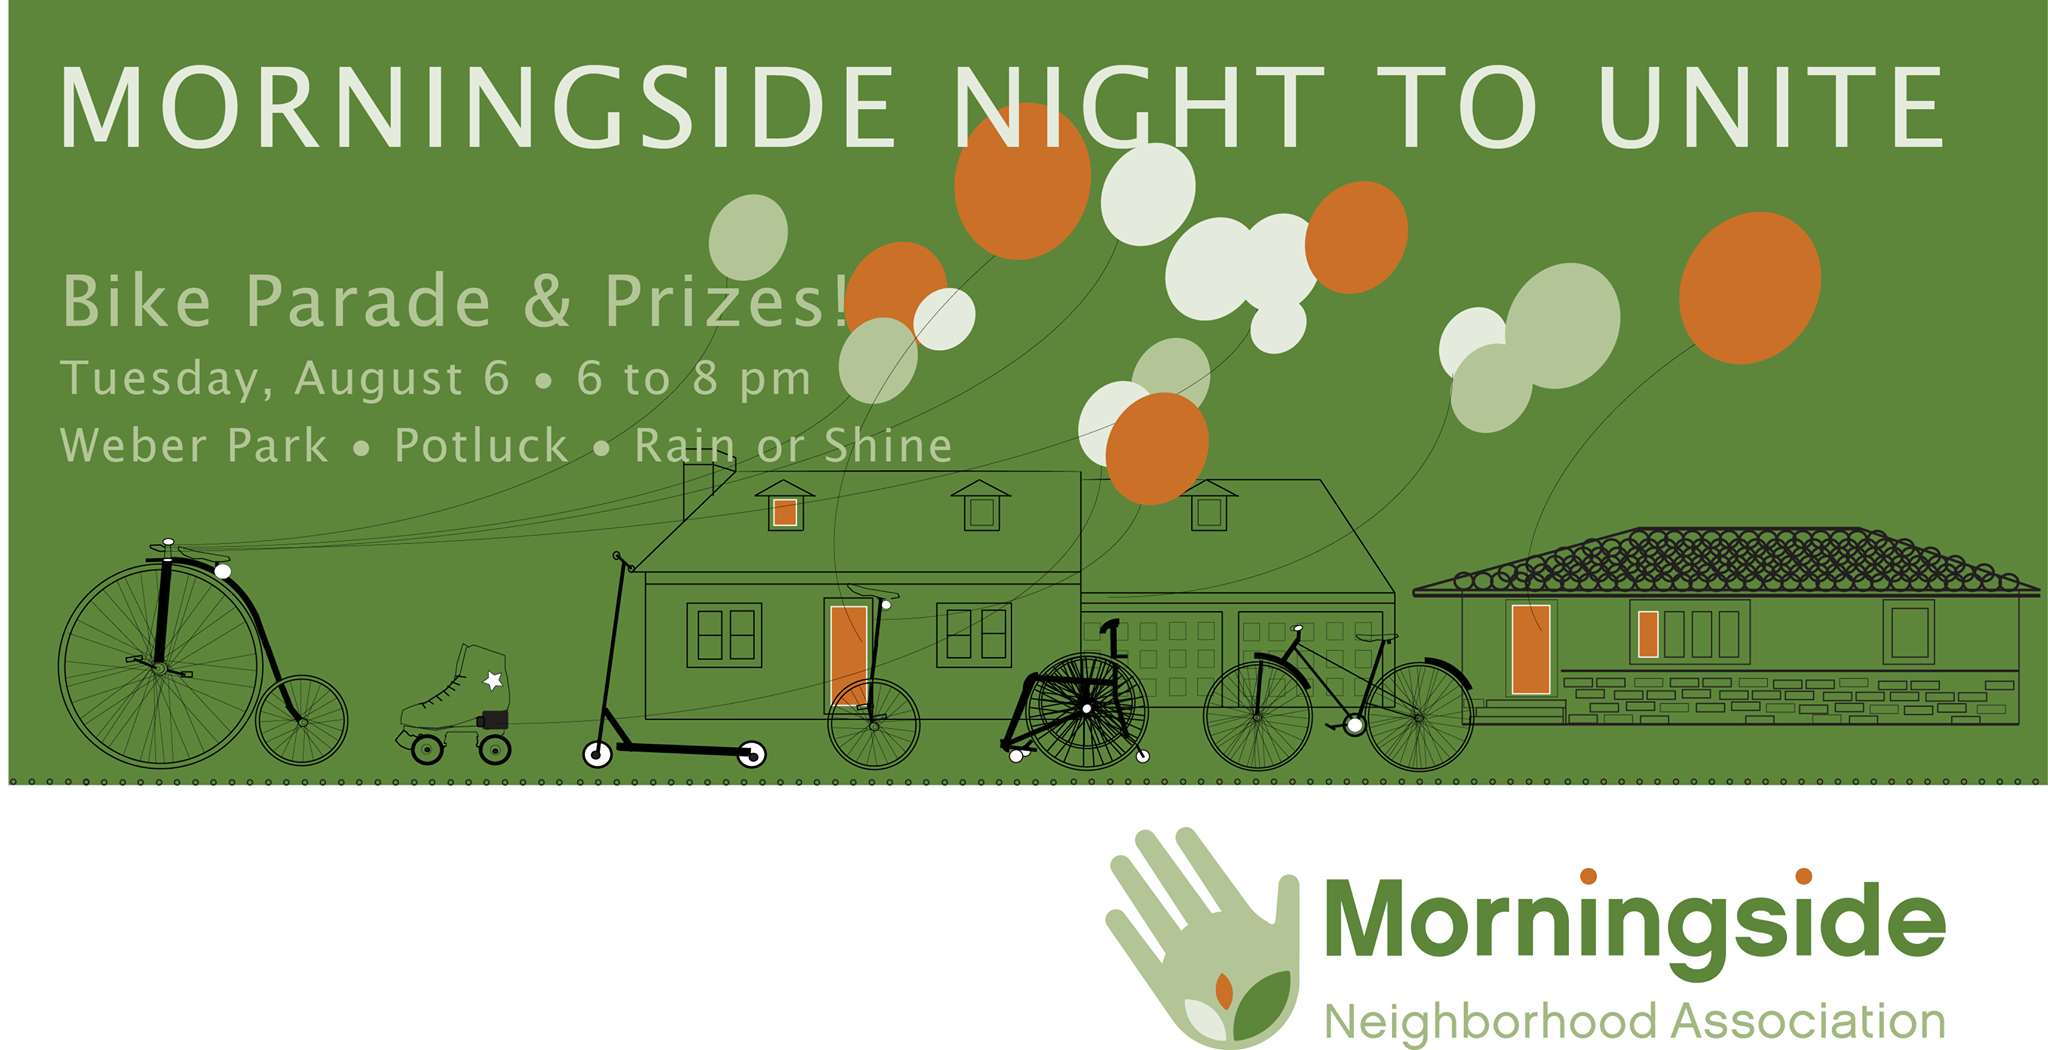 Neighborhood Night to Unite!    Tuesday, August 6, 6-8pm @ Weber Park